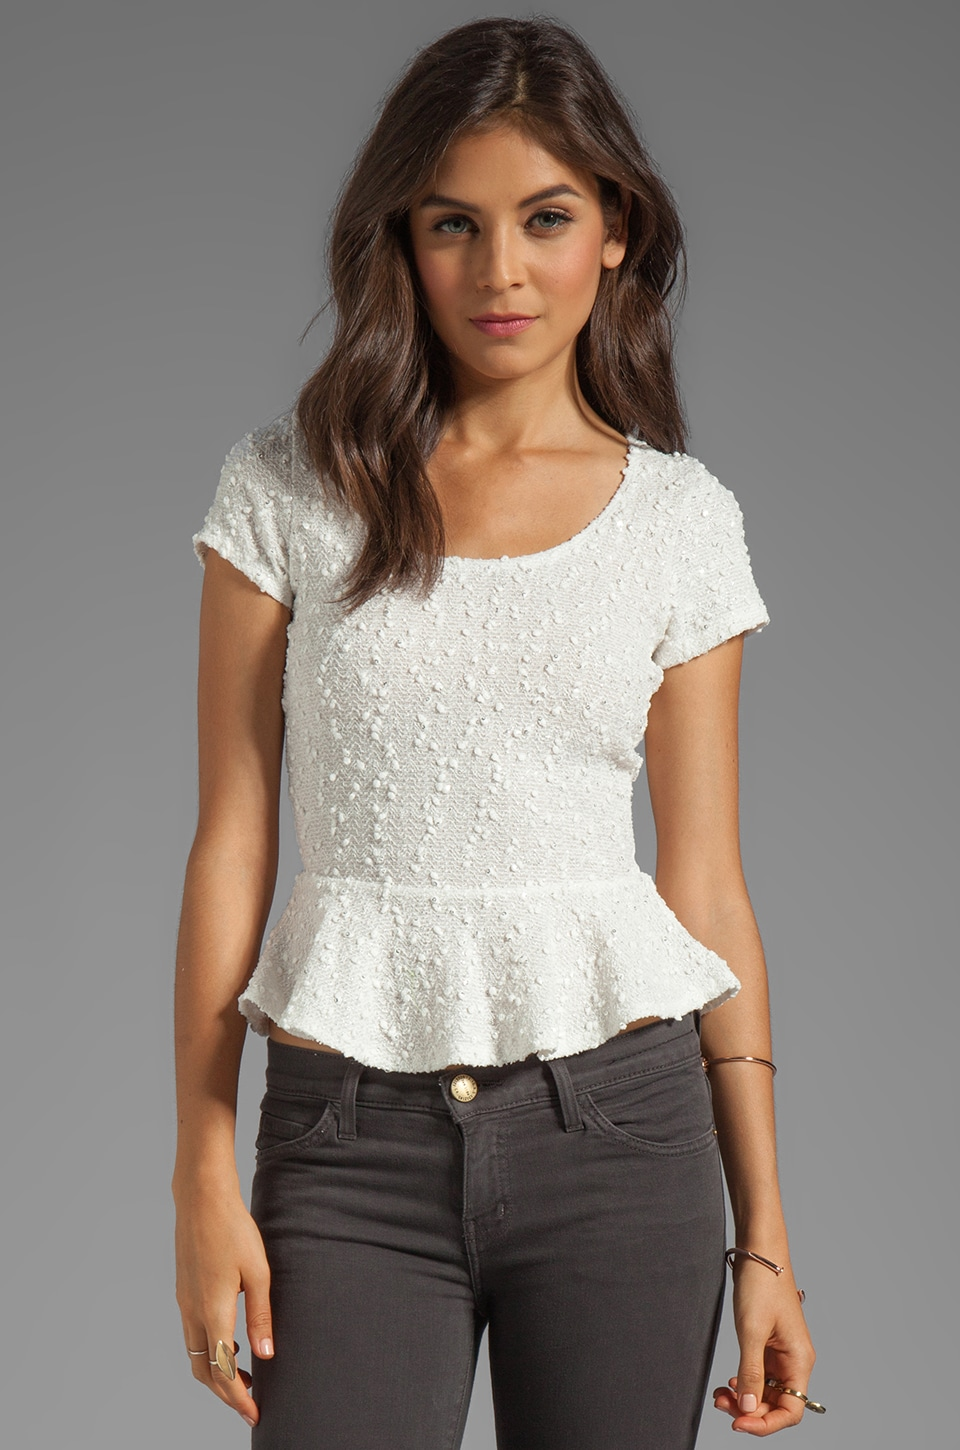 VOOM by Joy Han Penelope Top in White